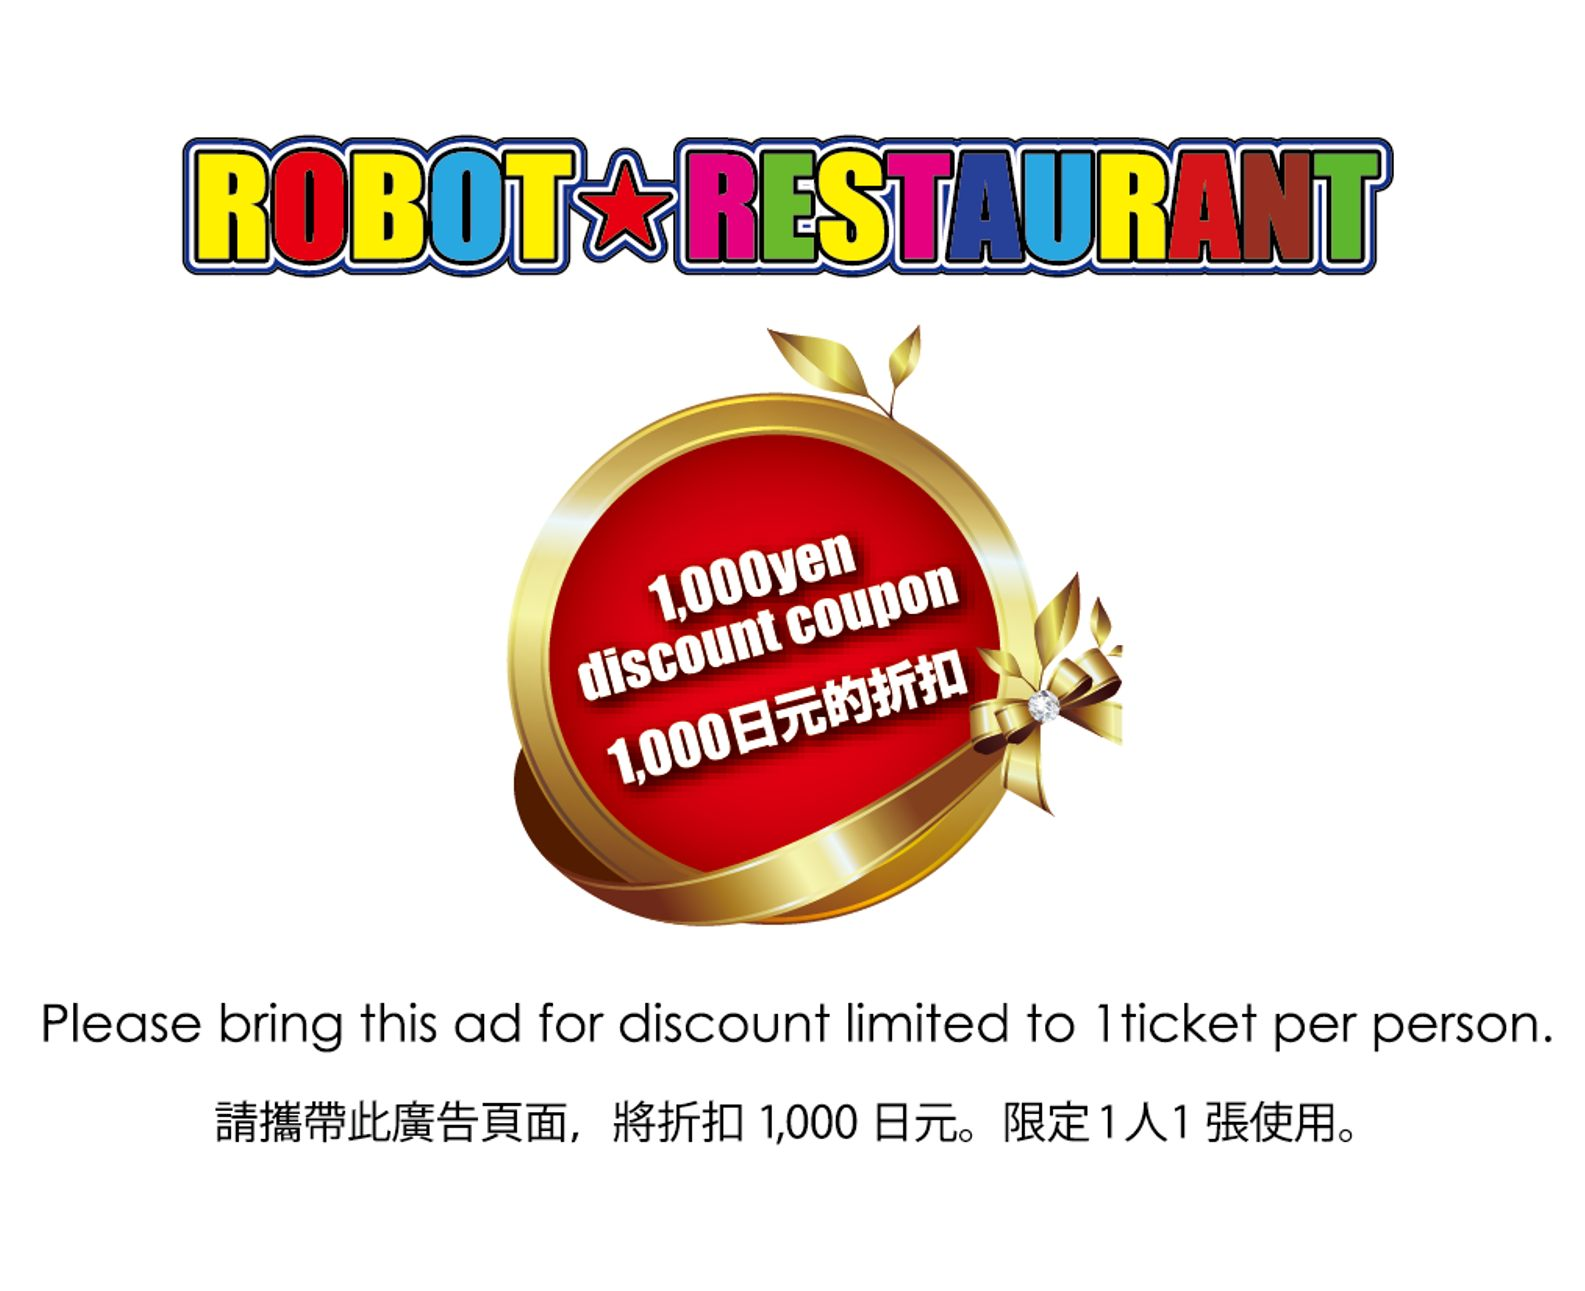 This coupon will give you ¥1,000 discount per person